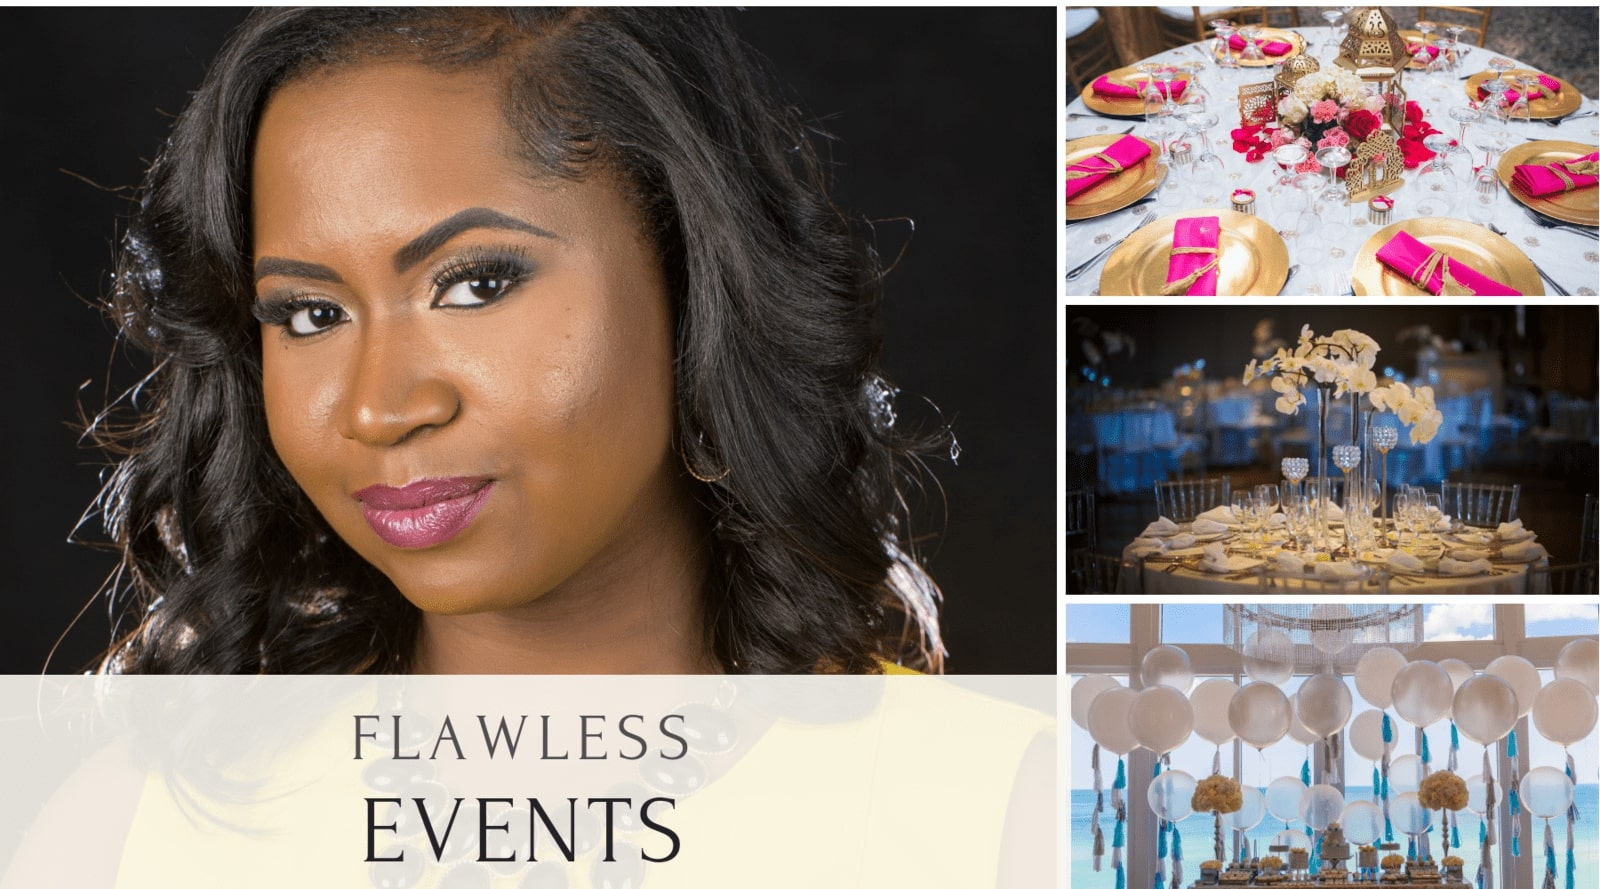 Today's Expert: Merlyn Donatien from Flawless Events